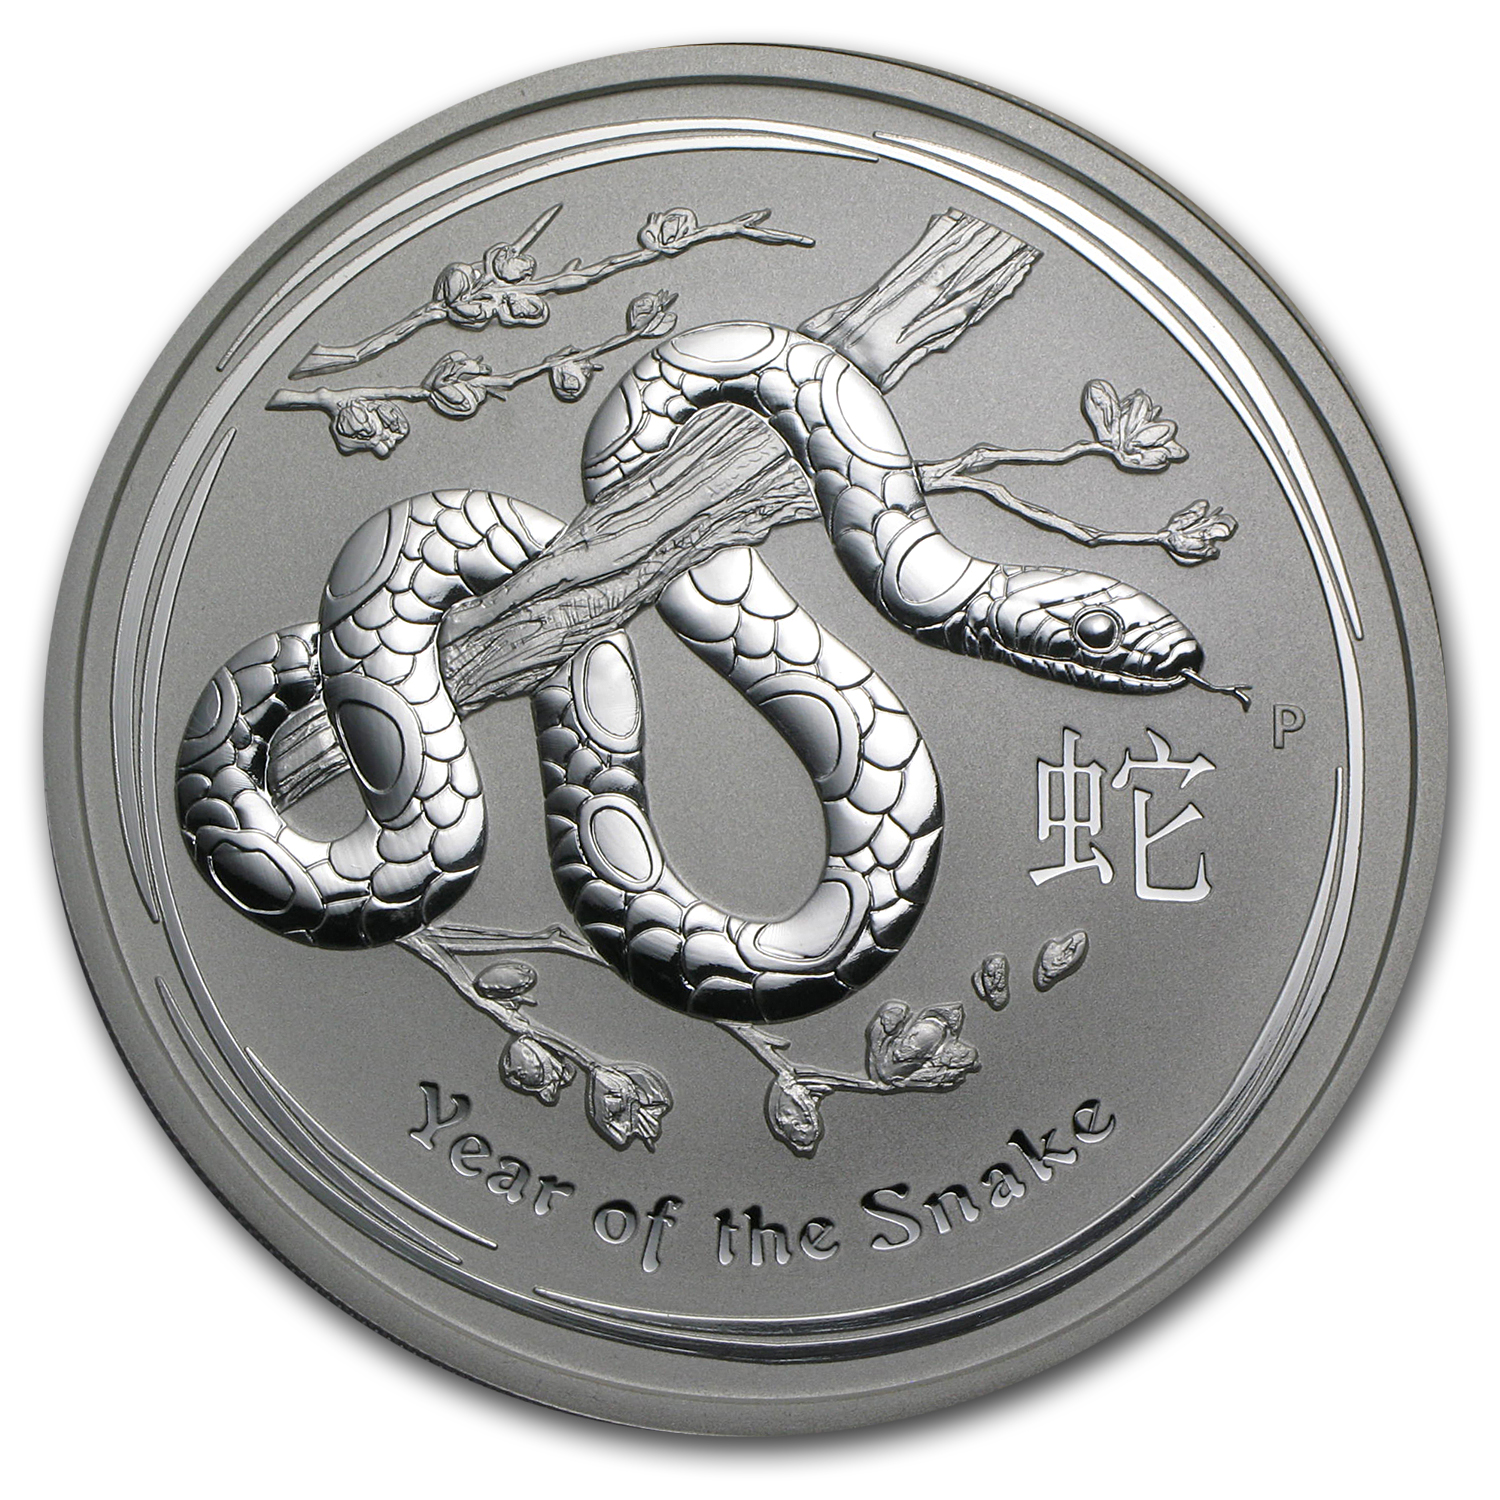 2013 Australia 5 oz Silver Year of the Snake BU